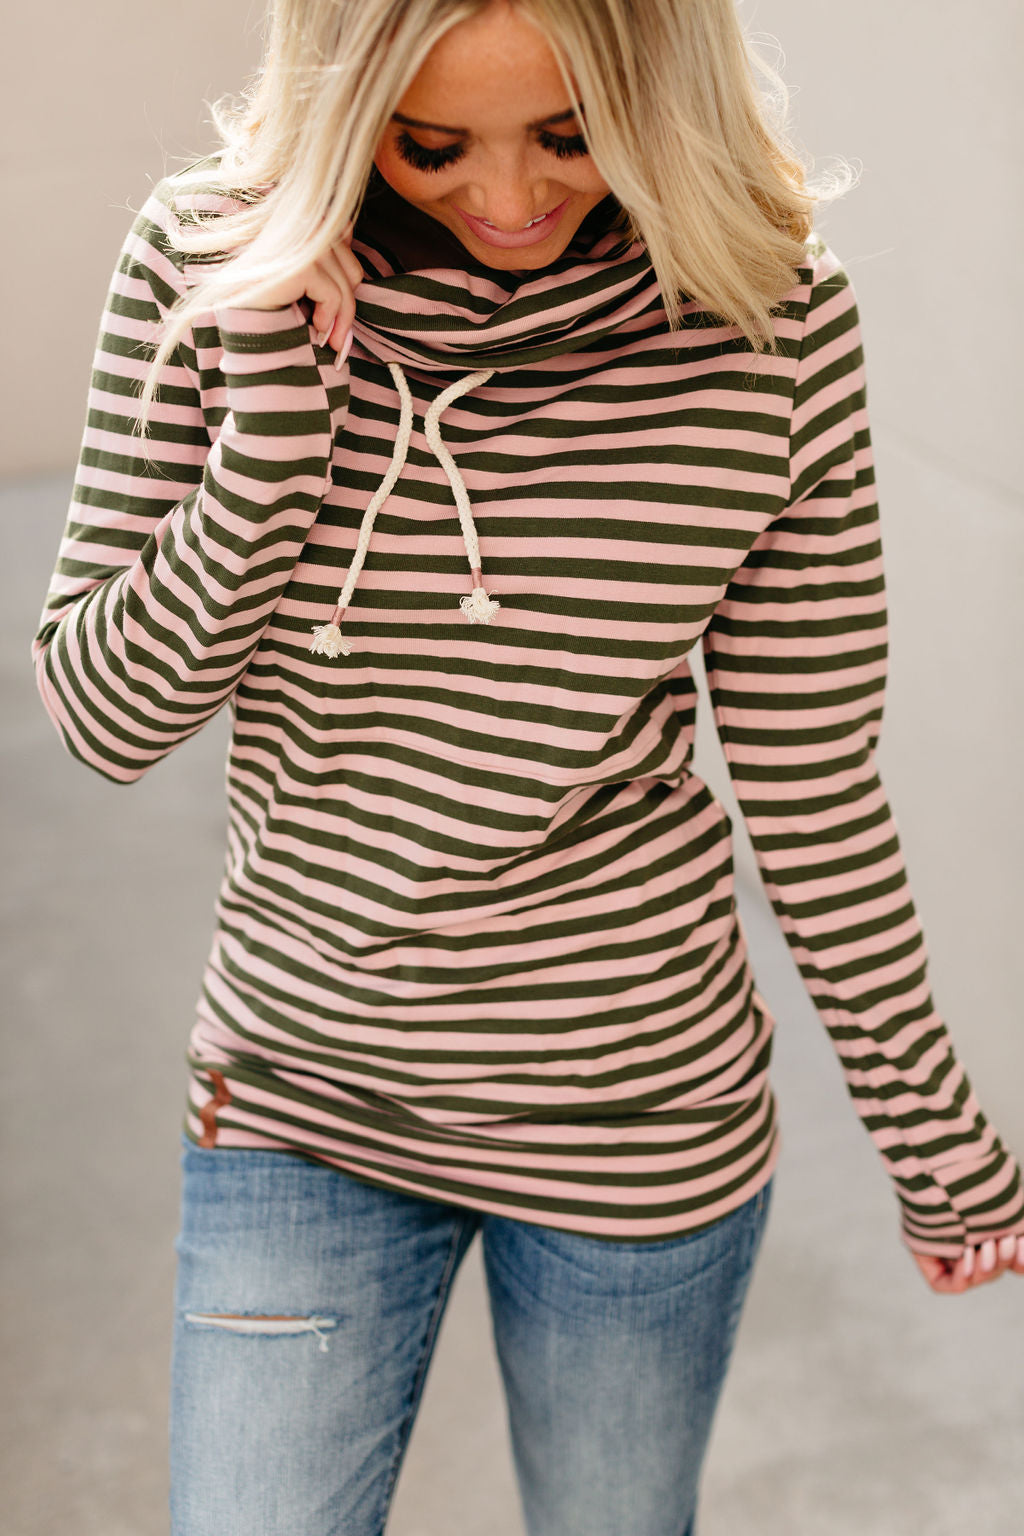 CowlNeck Sweatshirt - All A Flutter